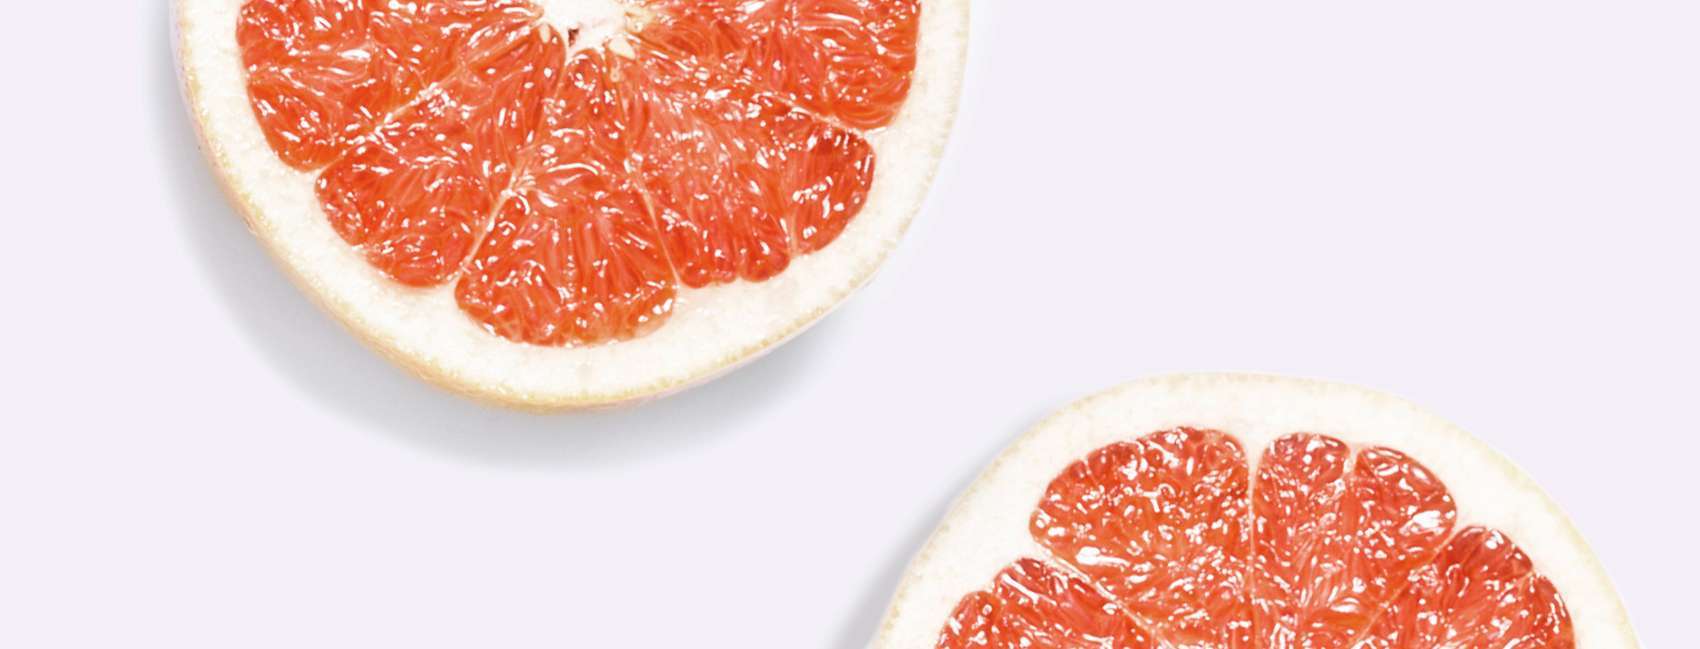 Cross section of grapefruit on grey background